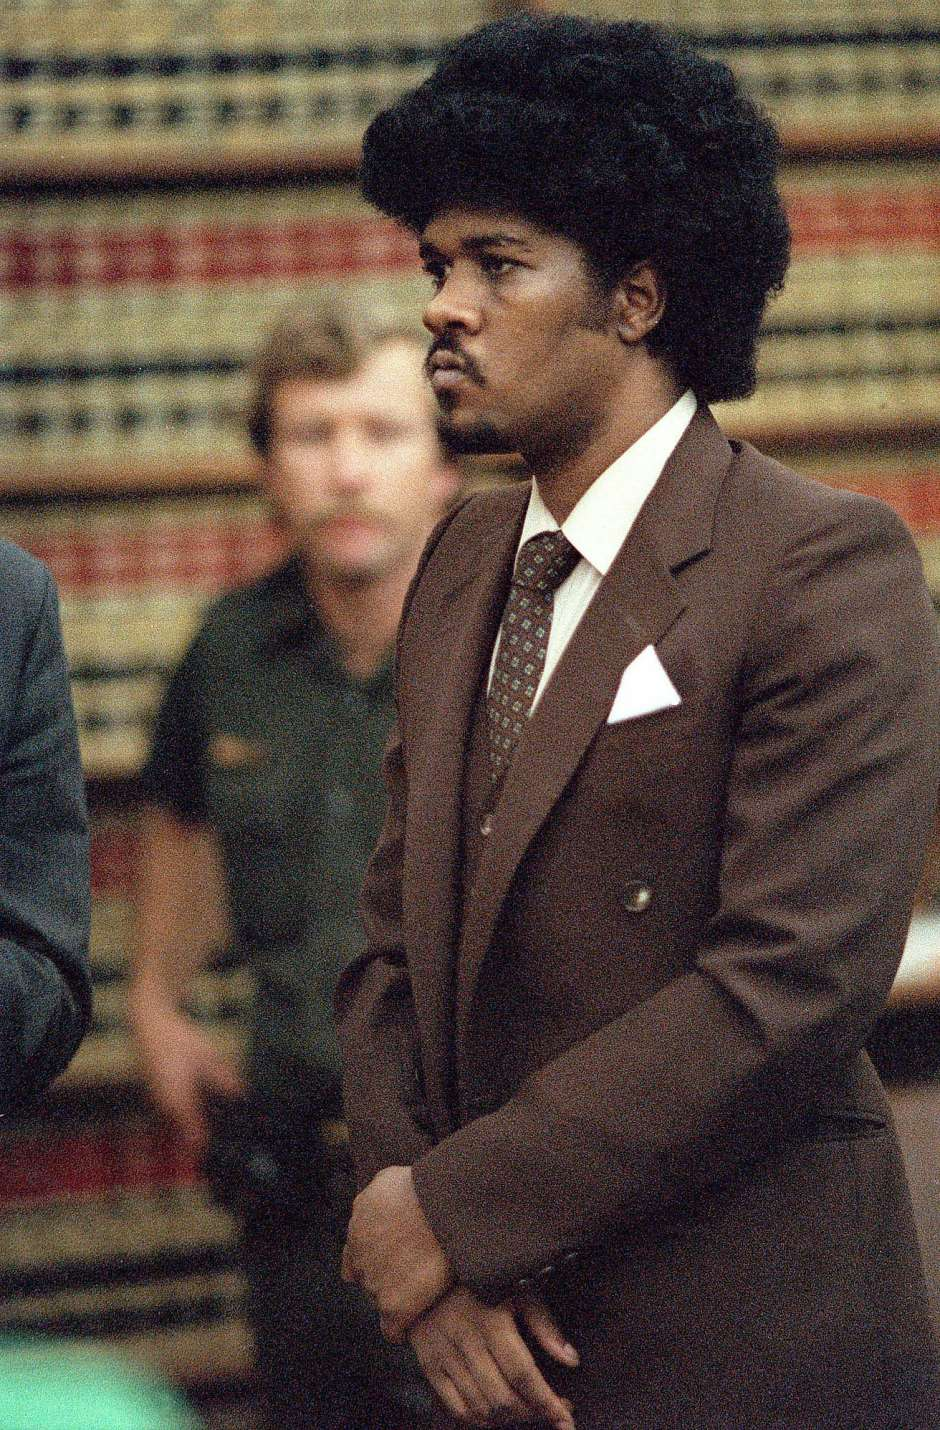 Kevin-Cooper-stands-before-San-Diego-judge-at-death-penalty-trial-1985-by-Dave-Siccardi-AP, Kevin Cooper: Surviving Death Row and COVID-19 in San Quentin, Behind Enemy Lines